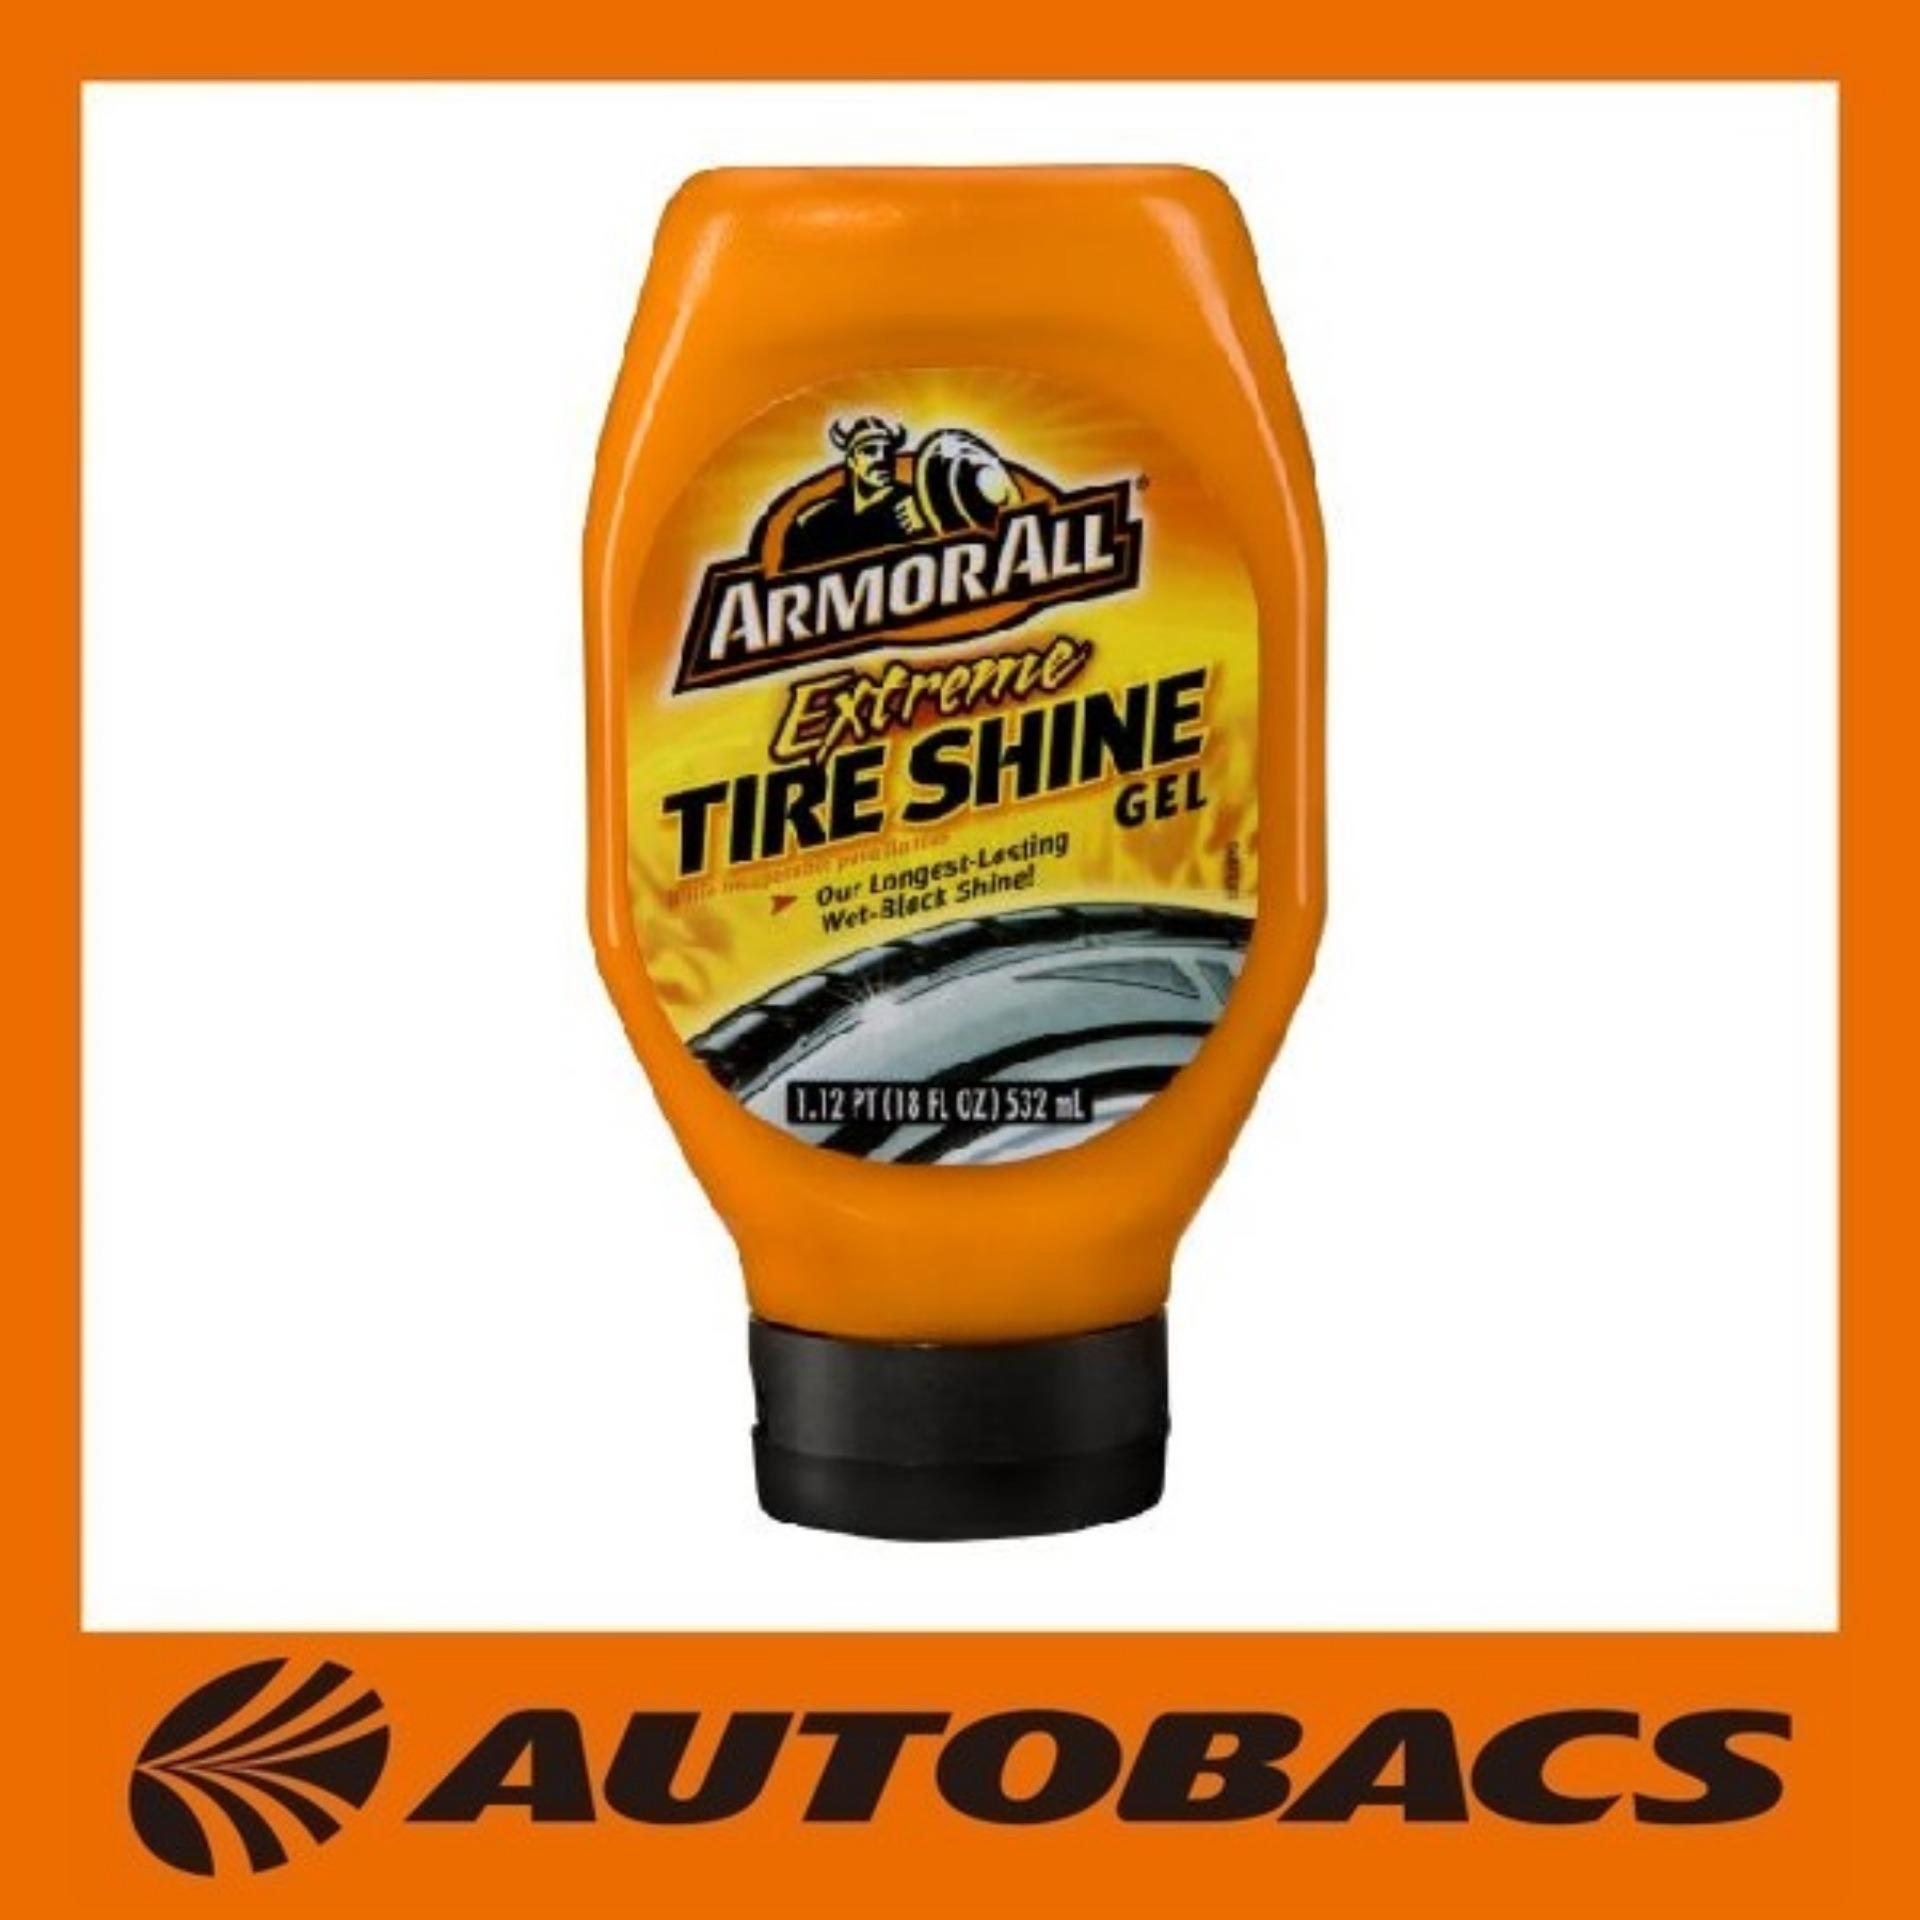 Armor All Extreme Tire Shine Gel Deal